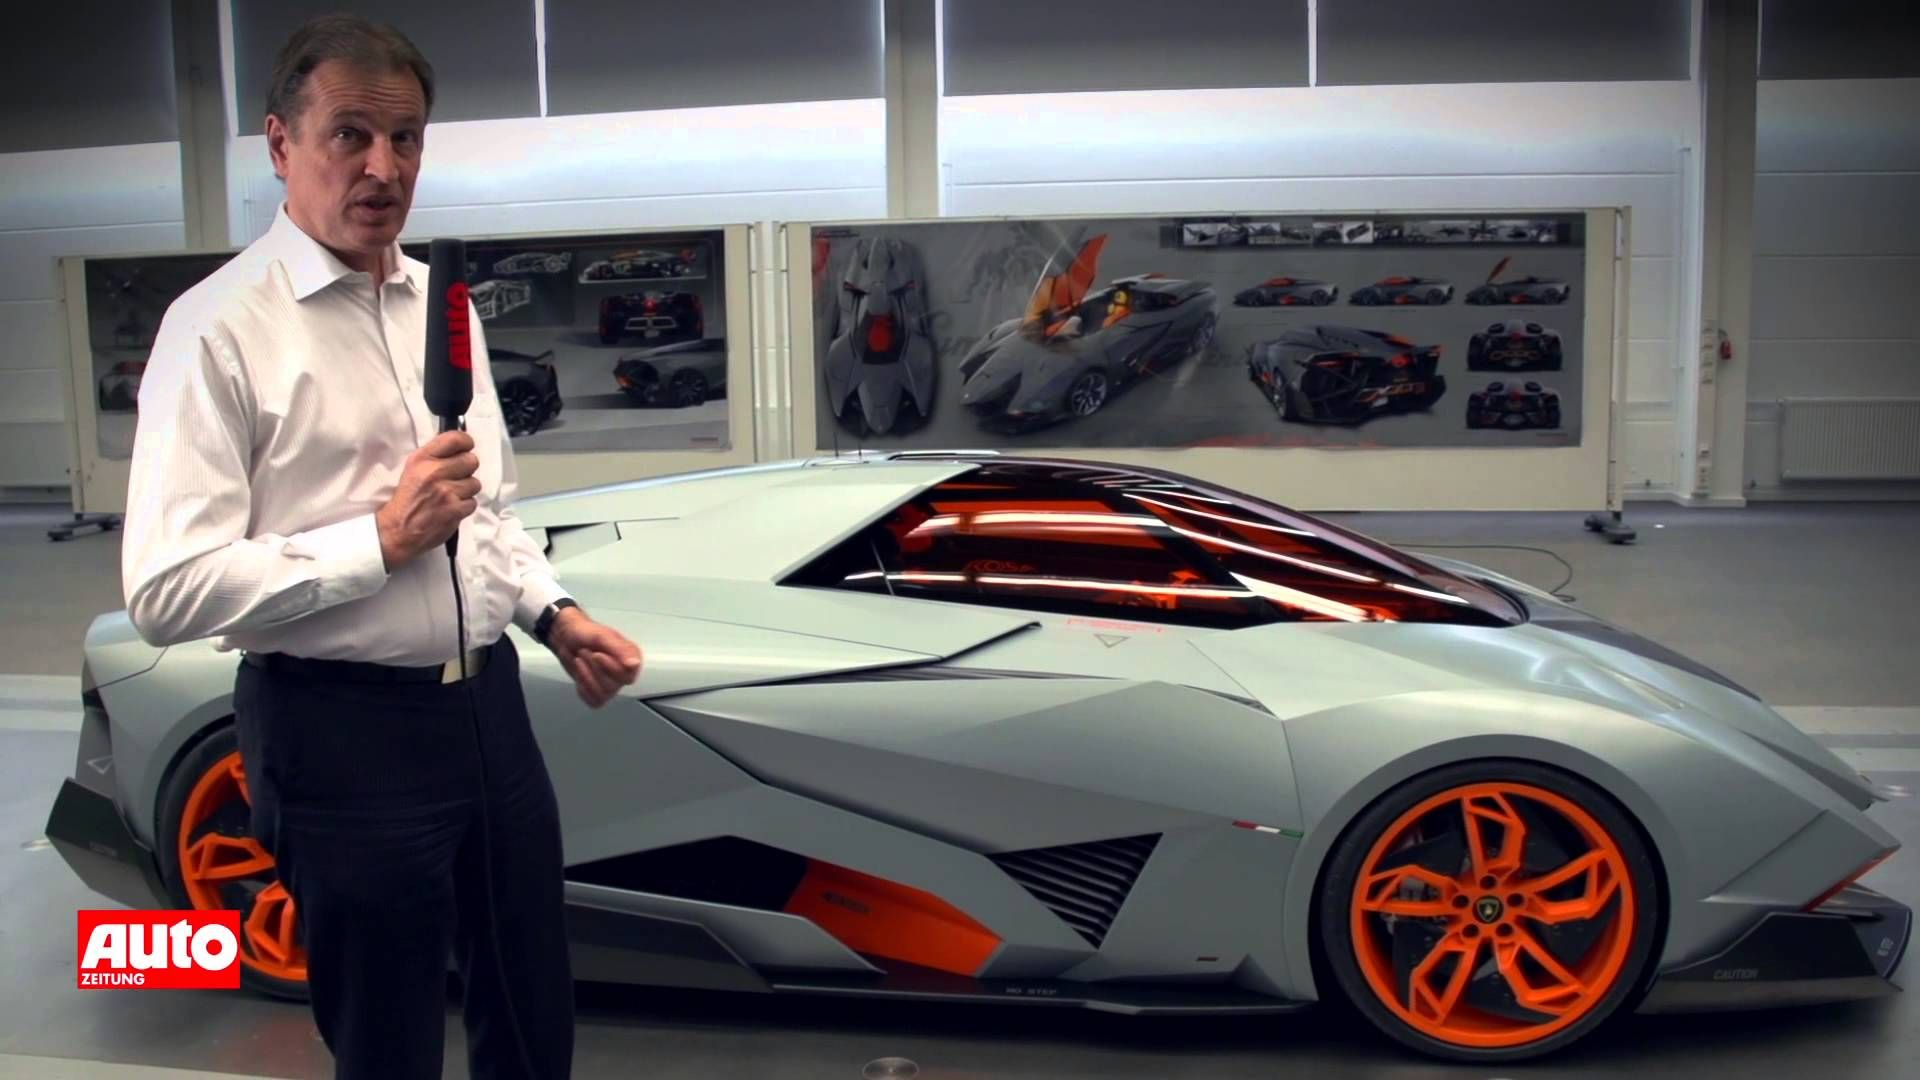 Lamborghini Egoista 2013 Concept Car Im Stealth Fighter Design